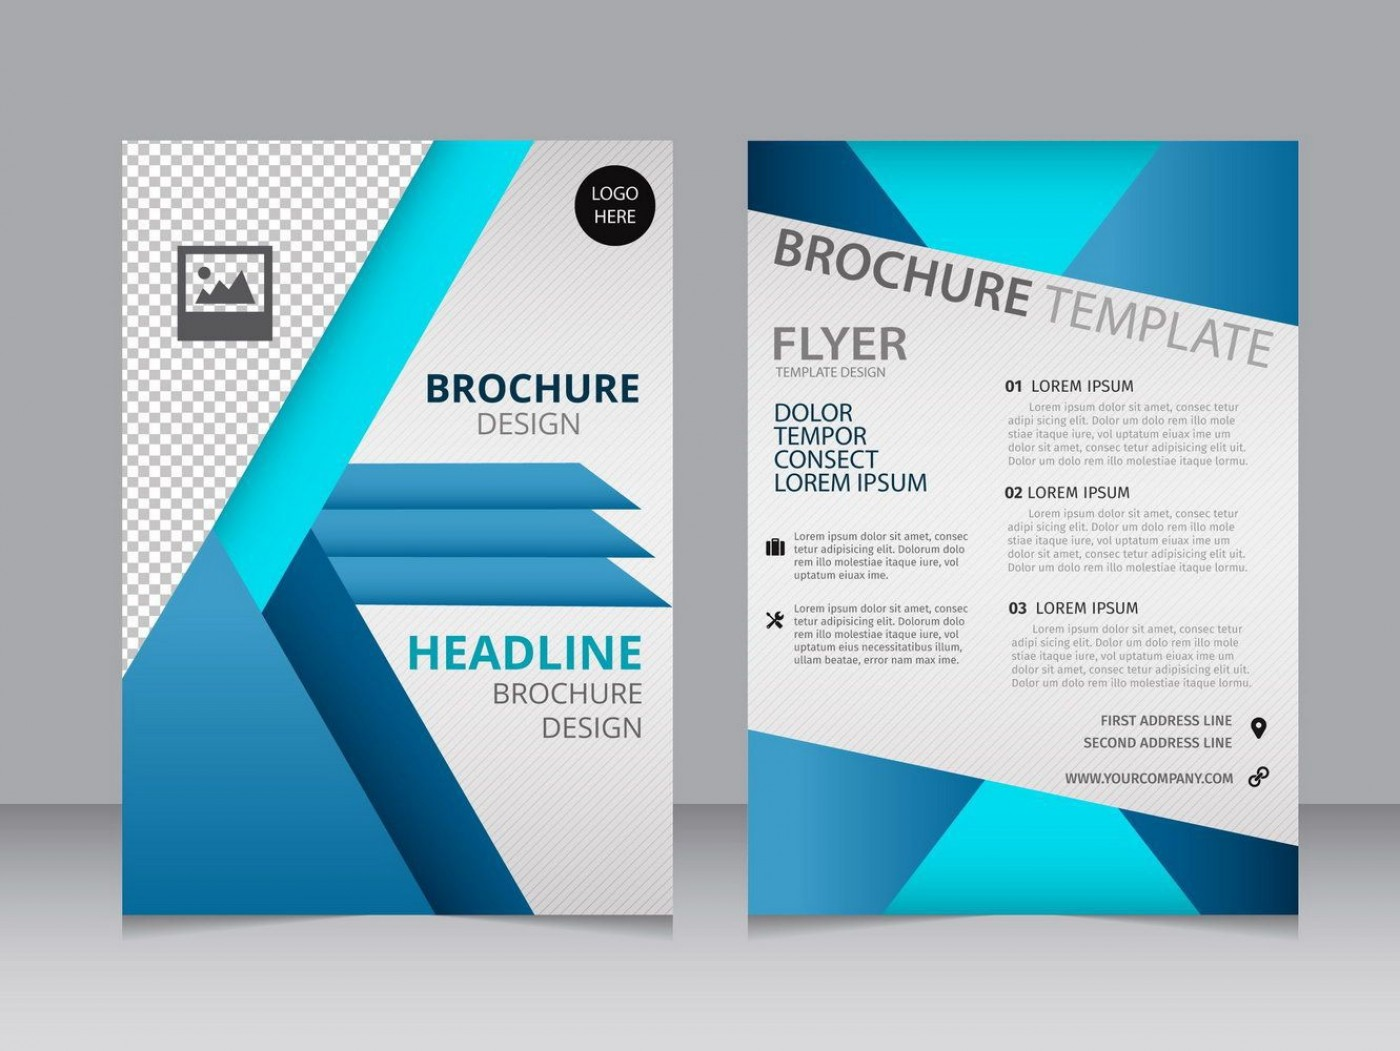 003 Awful Word Template Free Download Image  Simple Cv 20191400